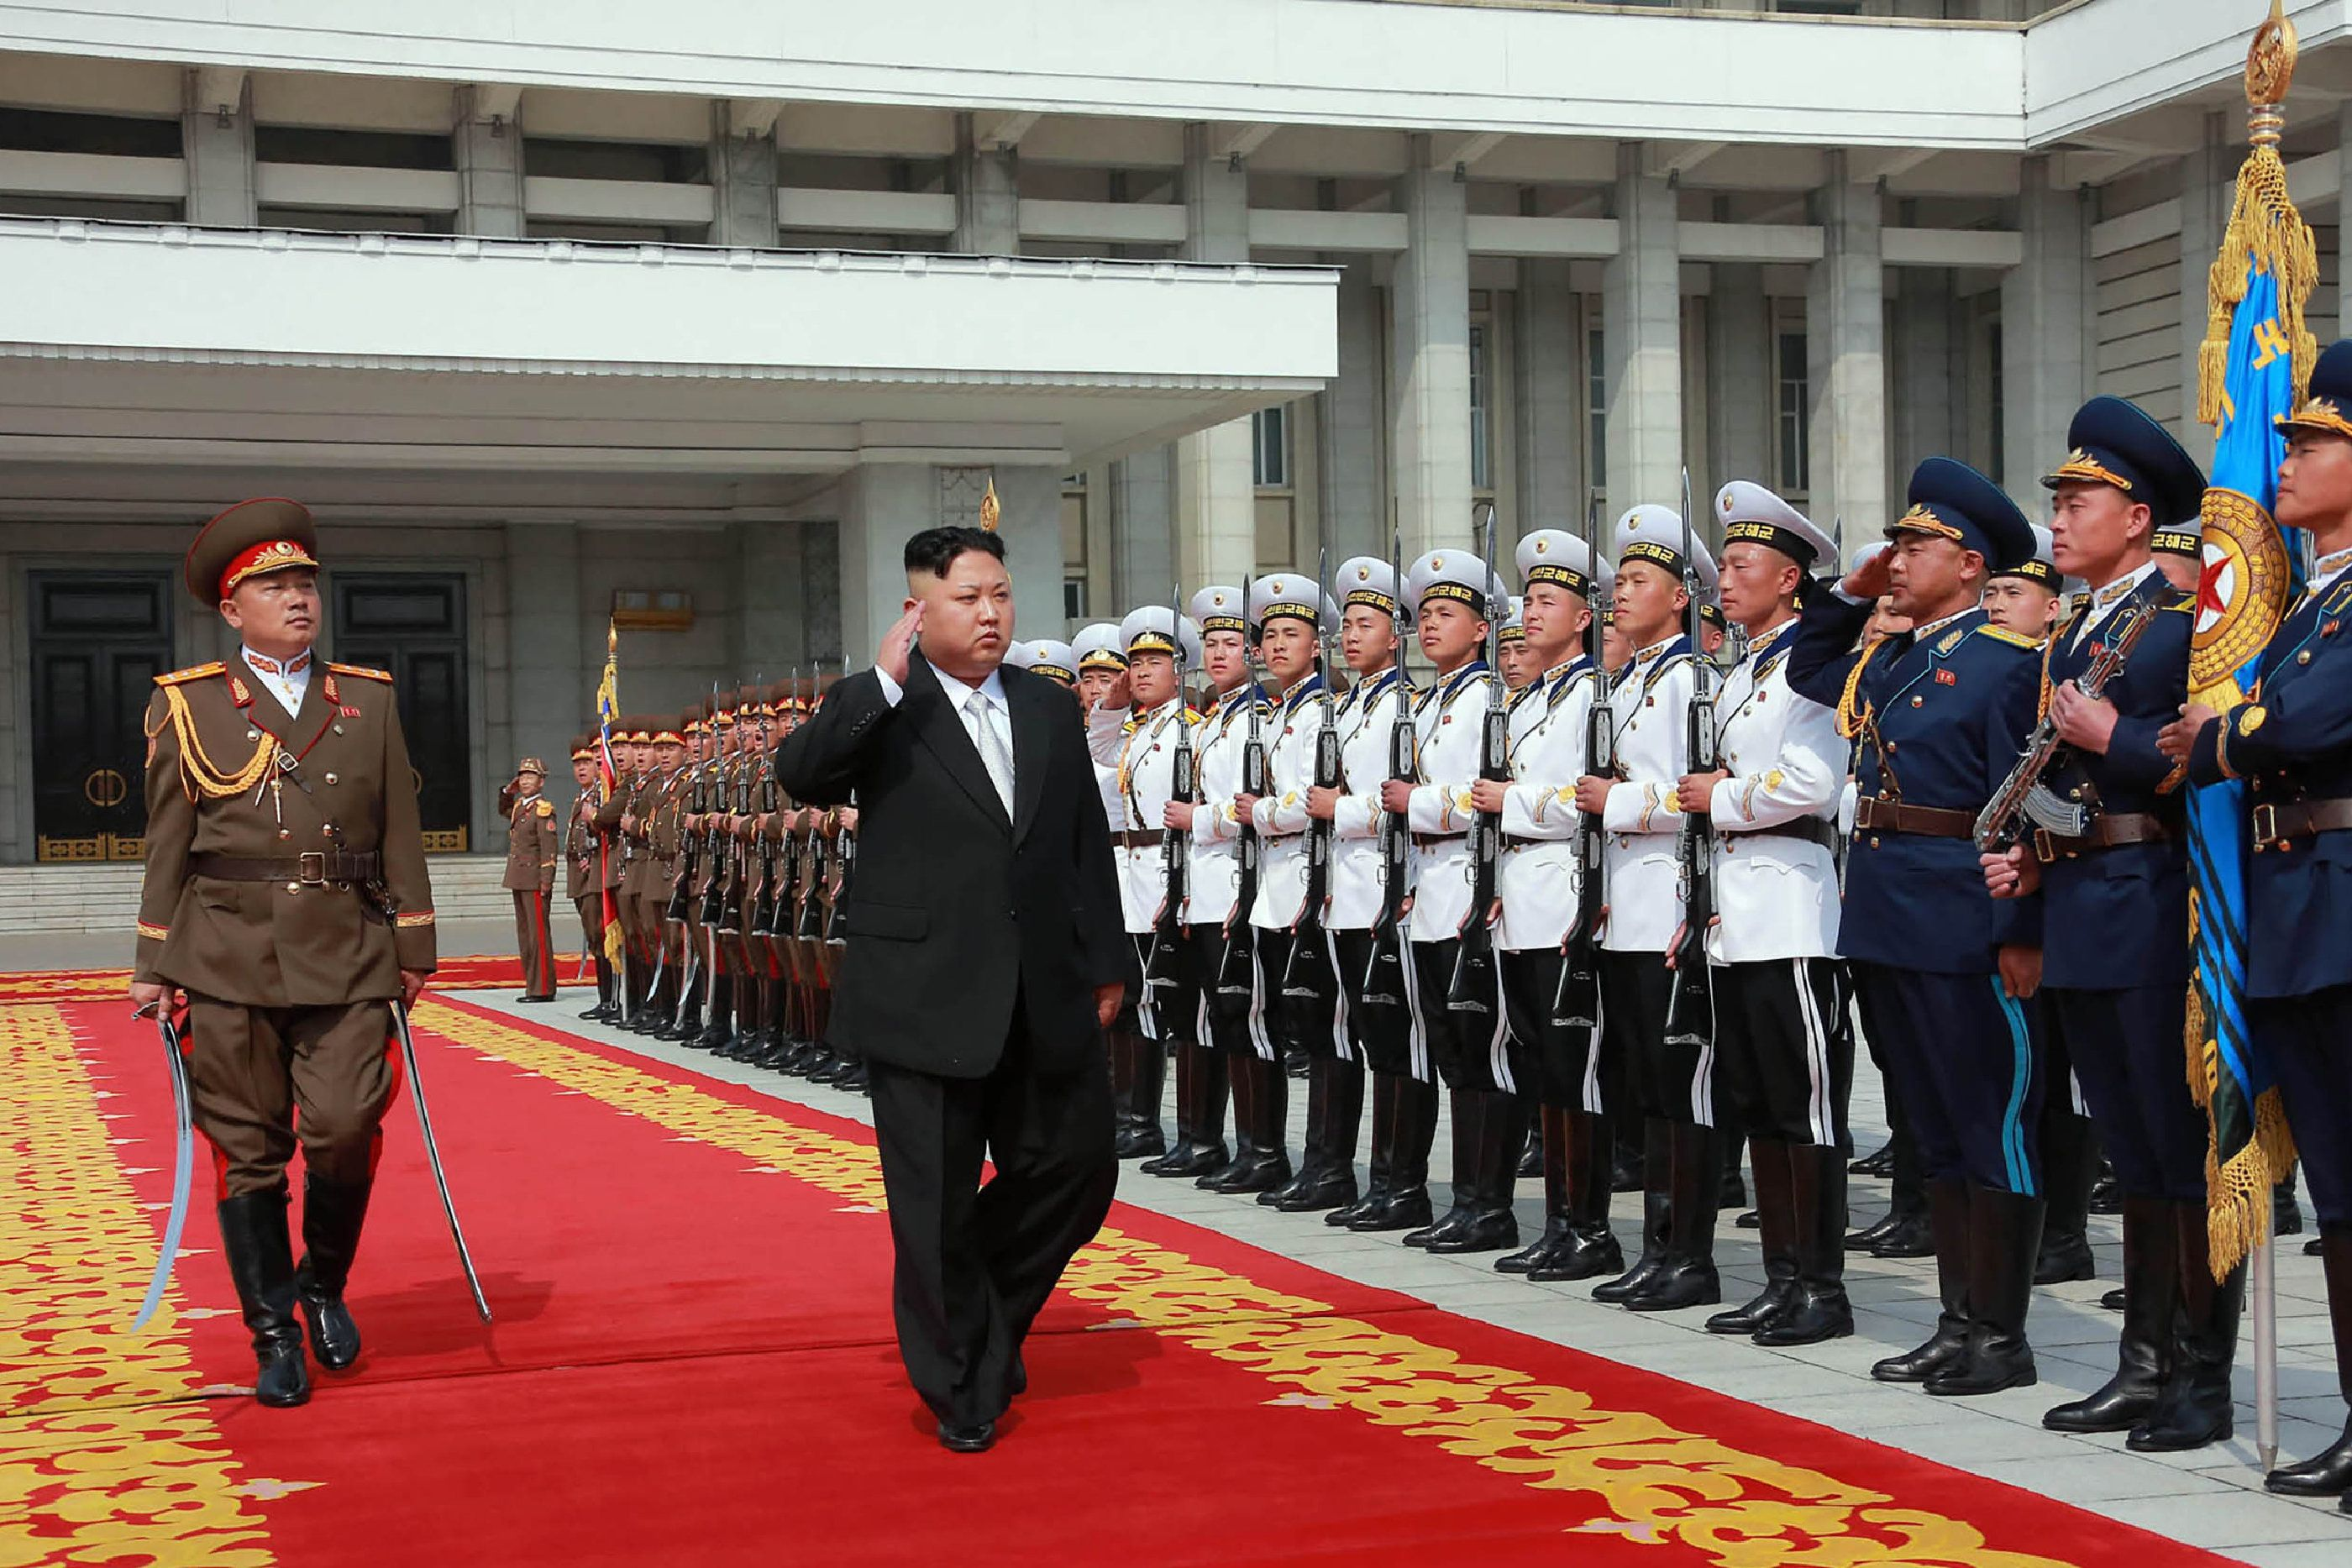 Kim Jong Un arrivesfor a military parade in Pyongyang marking the 105th anniversary of the birth...